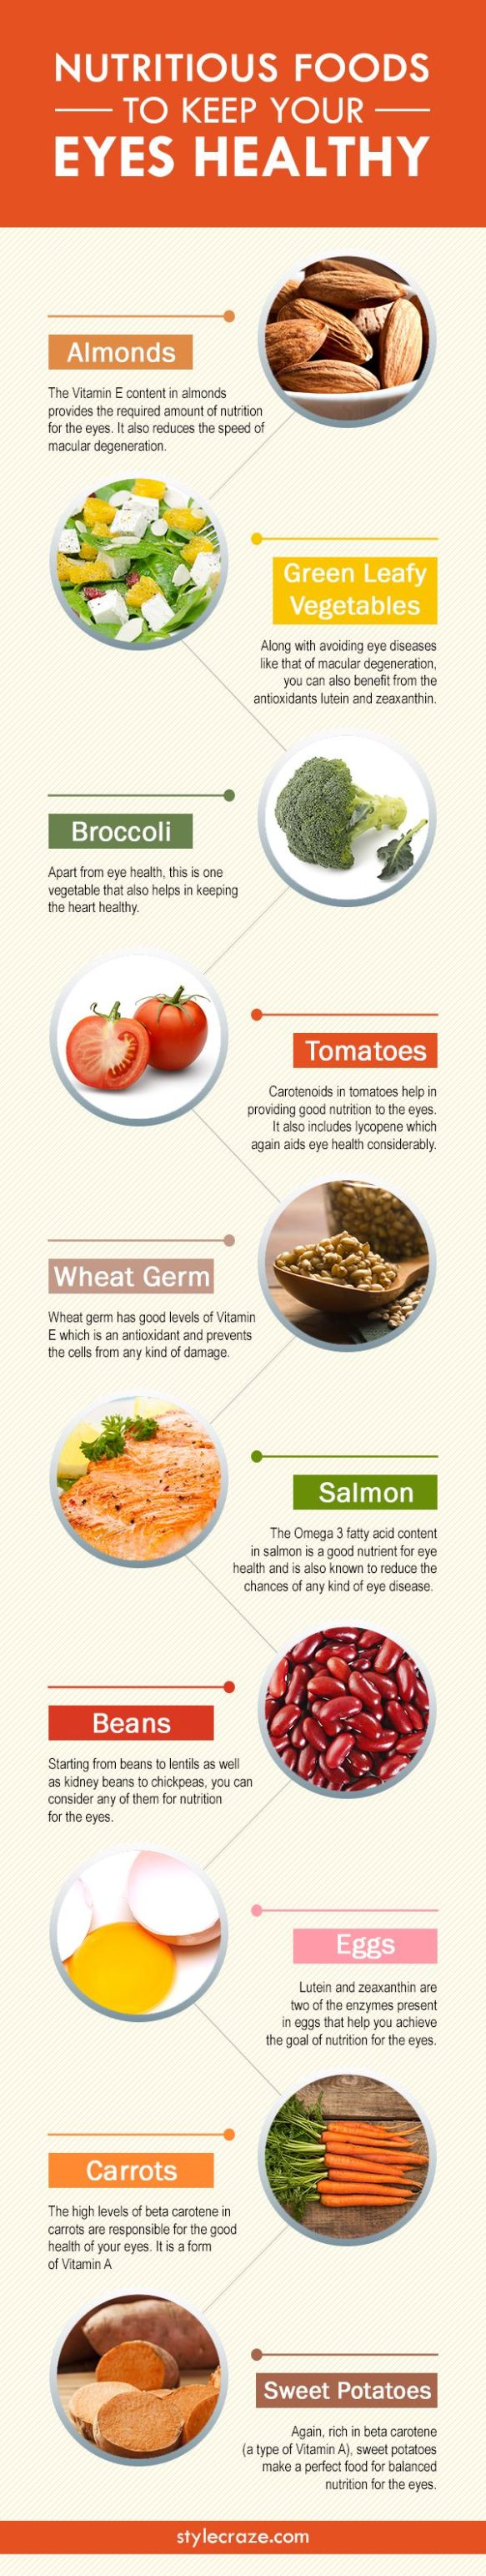 10 Nutritious Foods To Keep Your Eyes Healthy